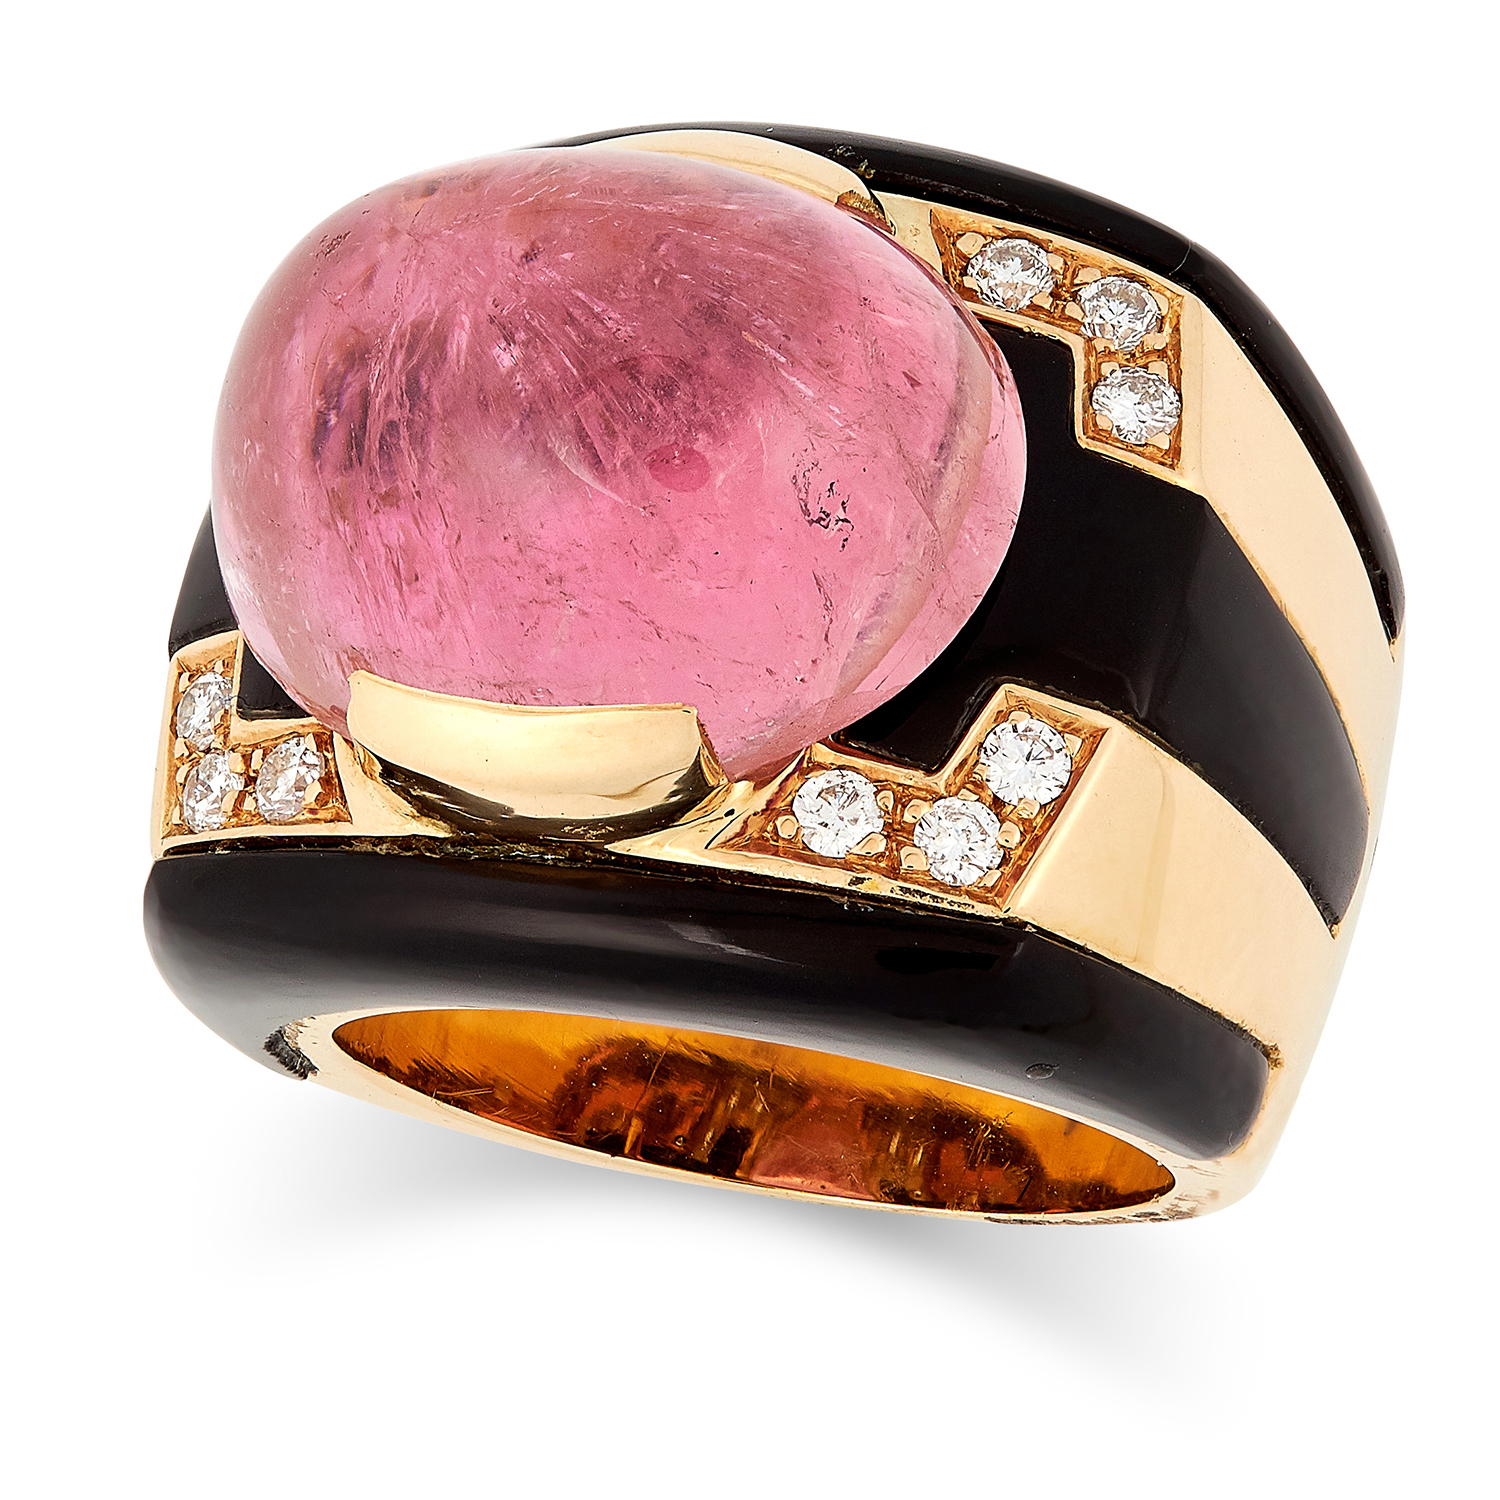 A RUBELLITE, ONYX AND DIAMOND RING in geometric design set with a cabochon rubellite, polished